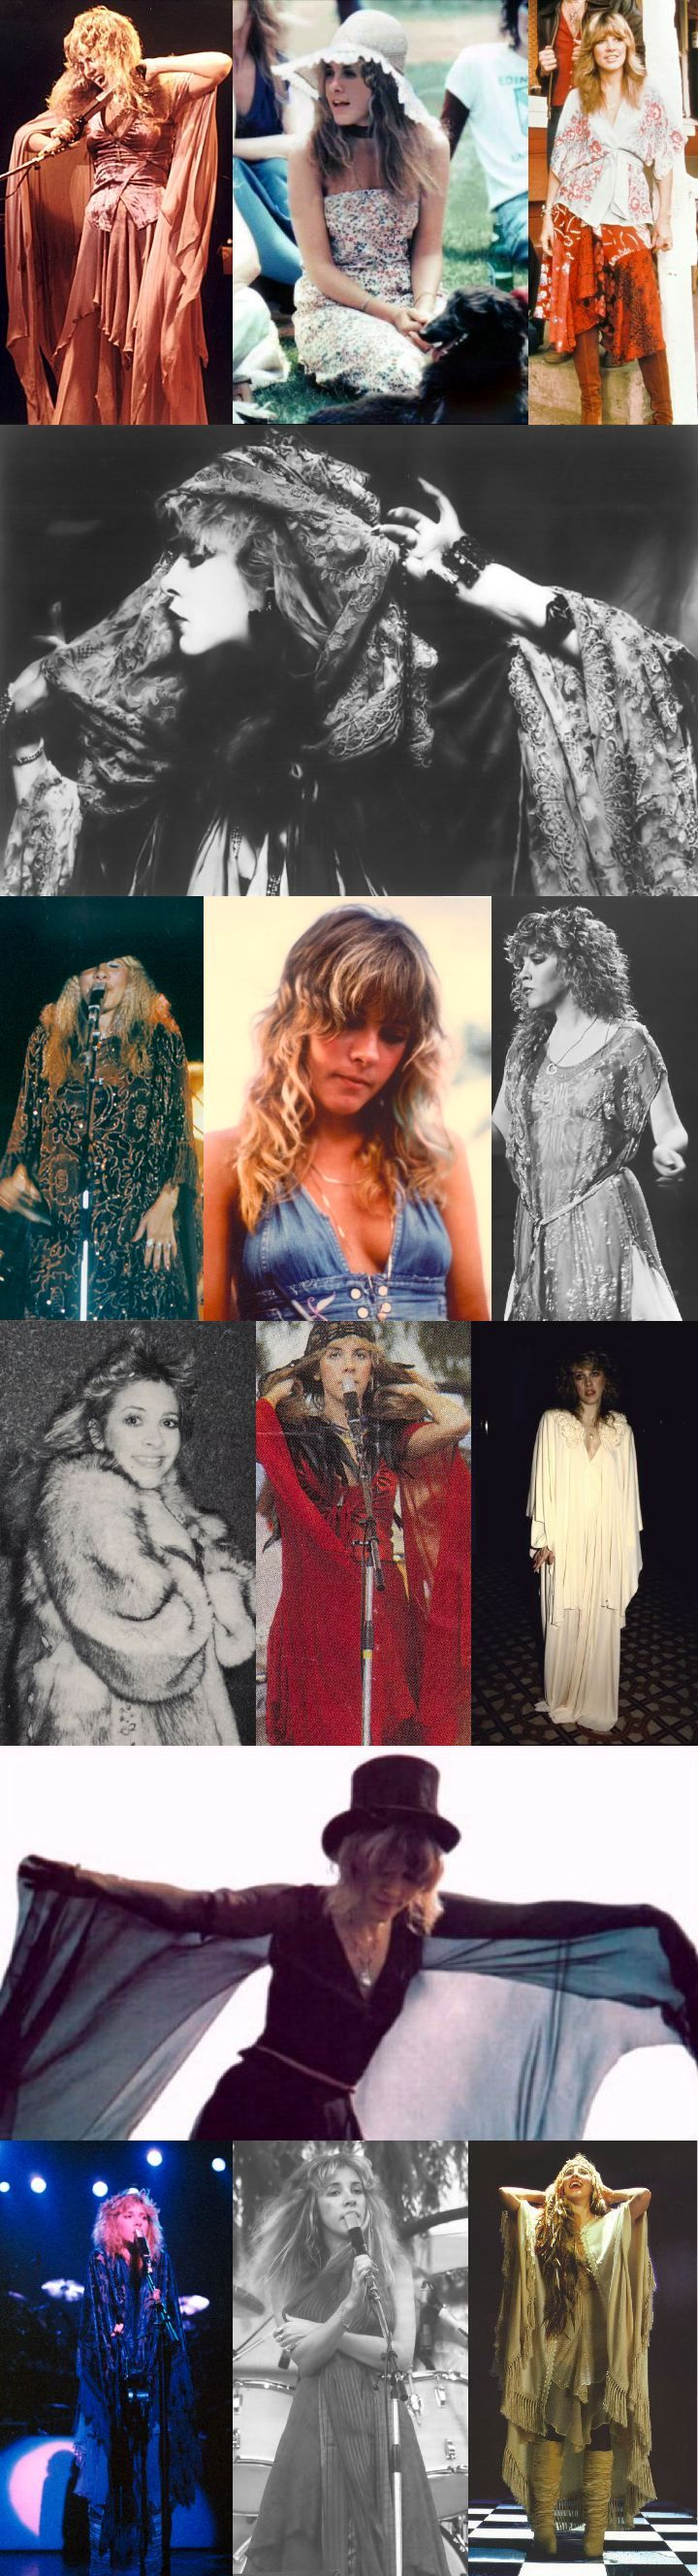 Stevie Nicks makes me want to dress like a gypsy.